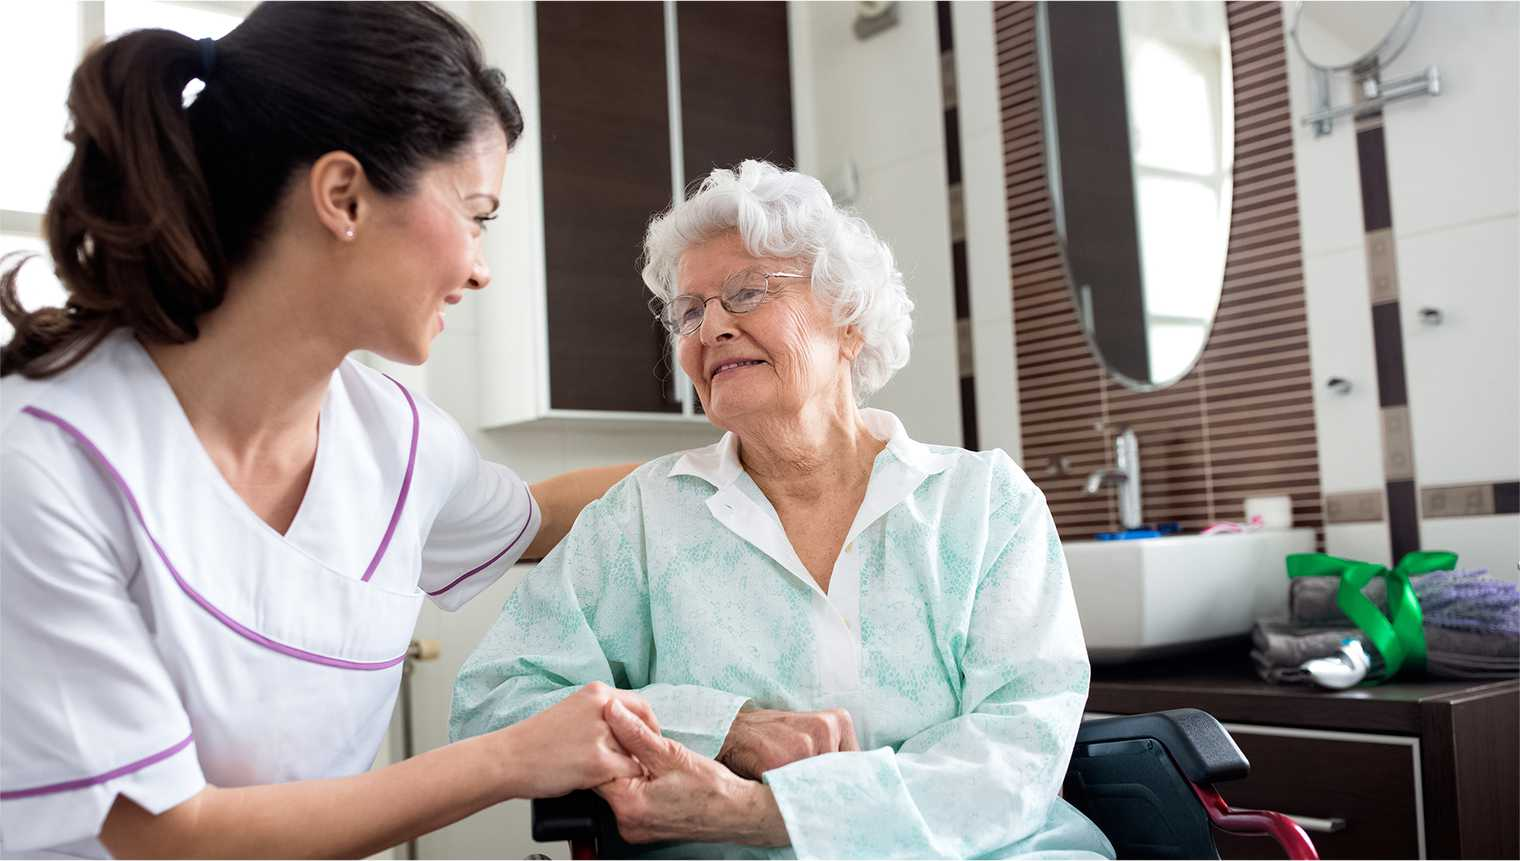 Retirement Living developments will generally have an optional home care service